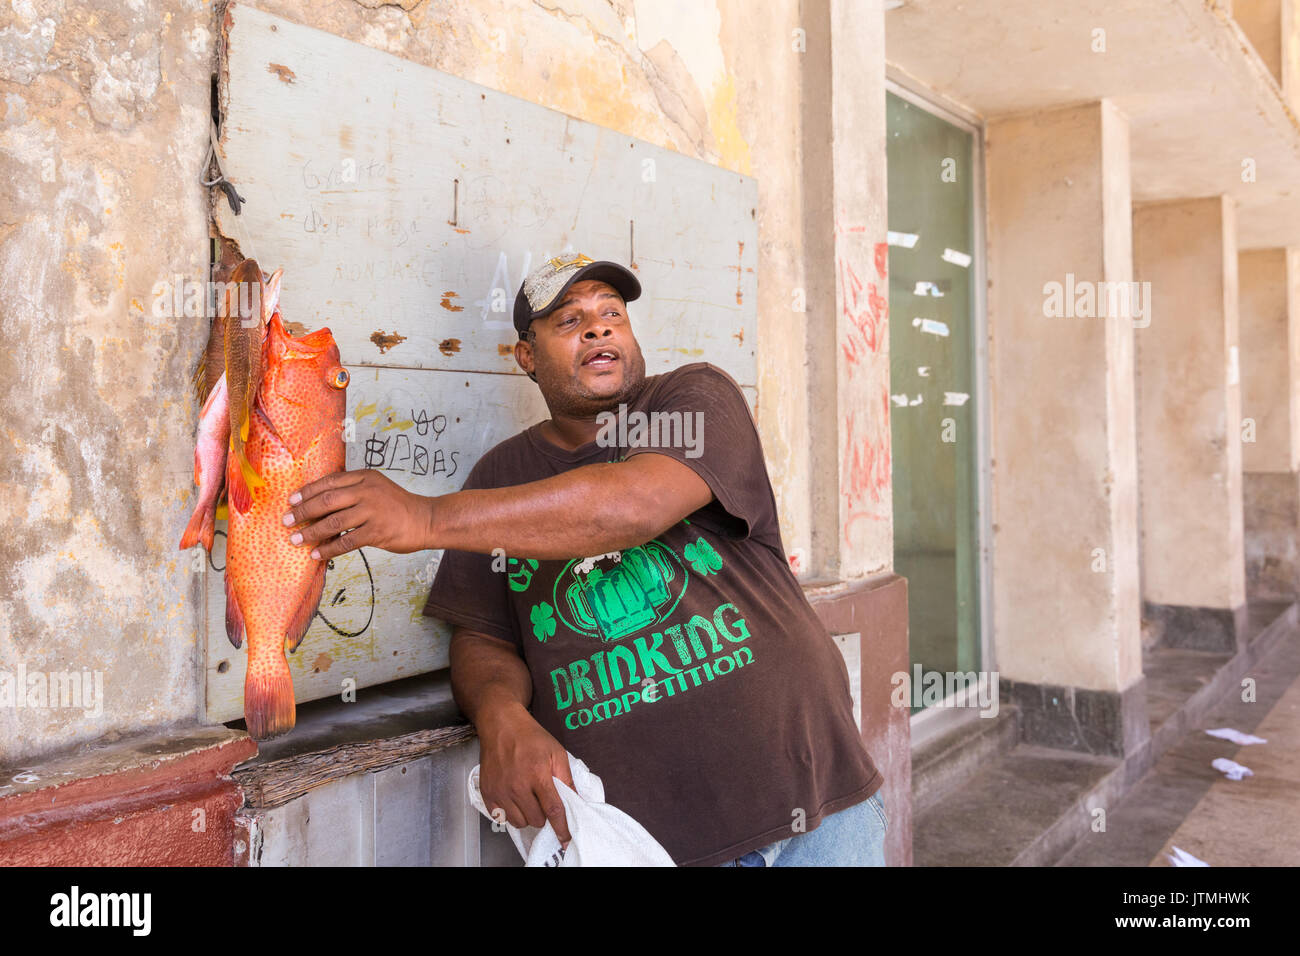 Street vendor selling  a red hind (also called lucky grouper) fresh fish in a street in Old Havana, Cuba - Stock Image